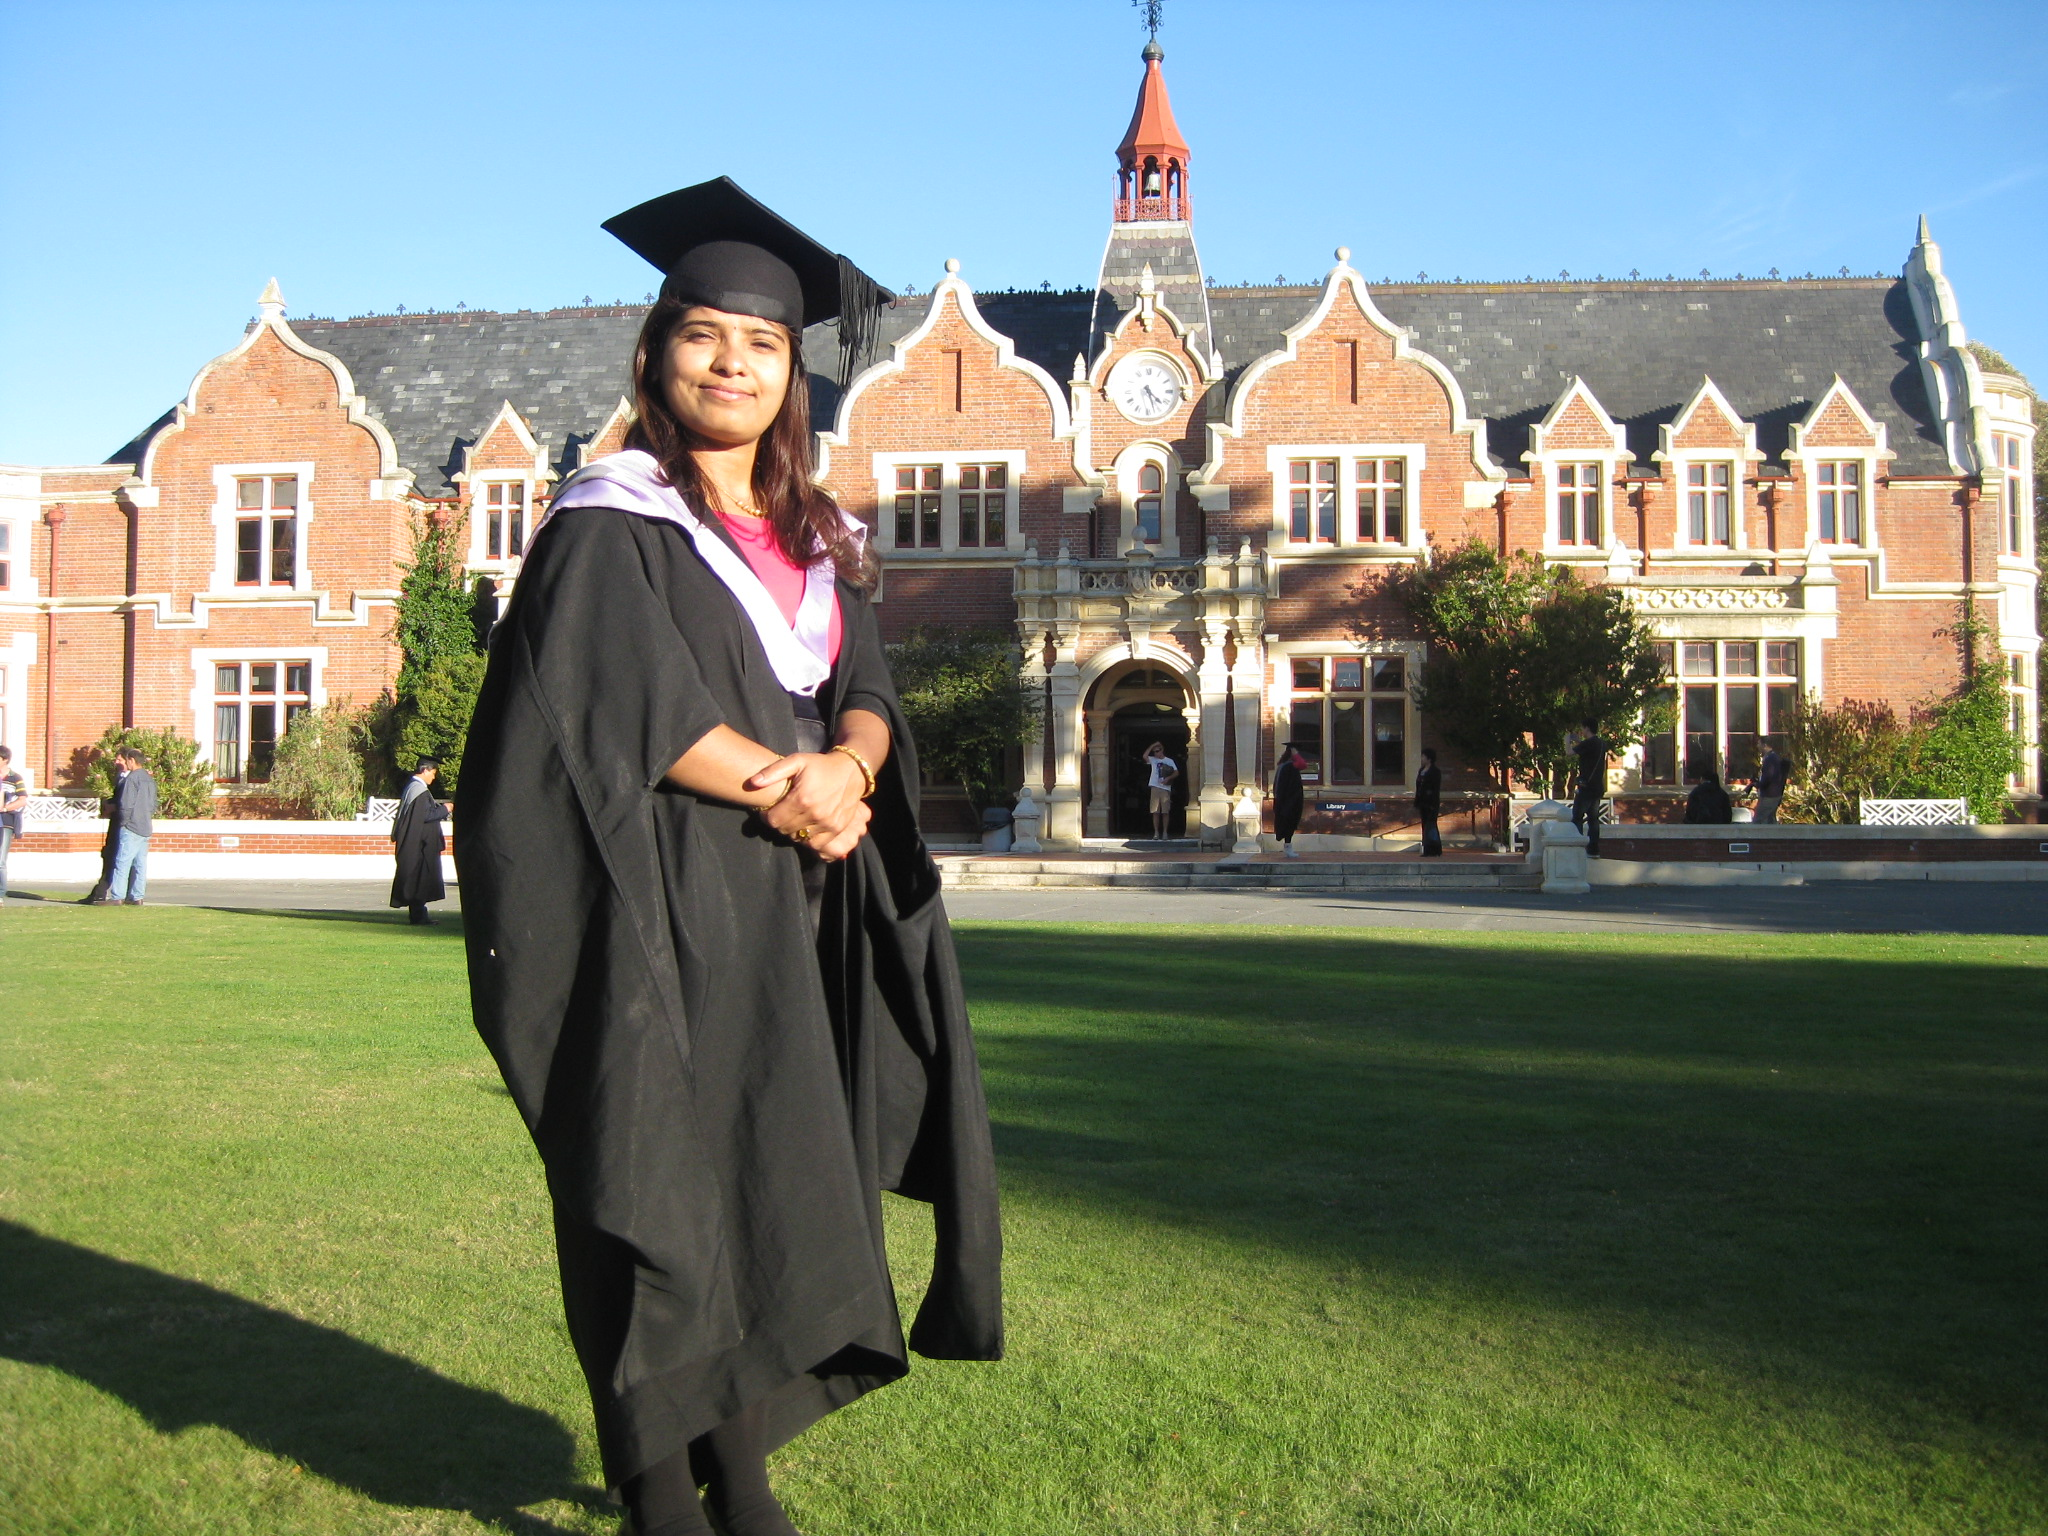 Ms Salina Poudyal - Ms Salina Poudyal completed her masters degree in Environmental Policy and is currently working towards a PhD at New Zealand.